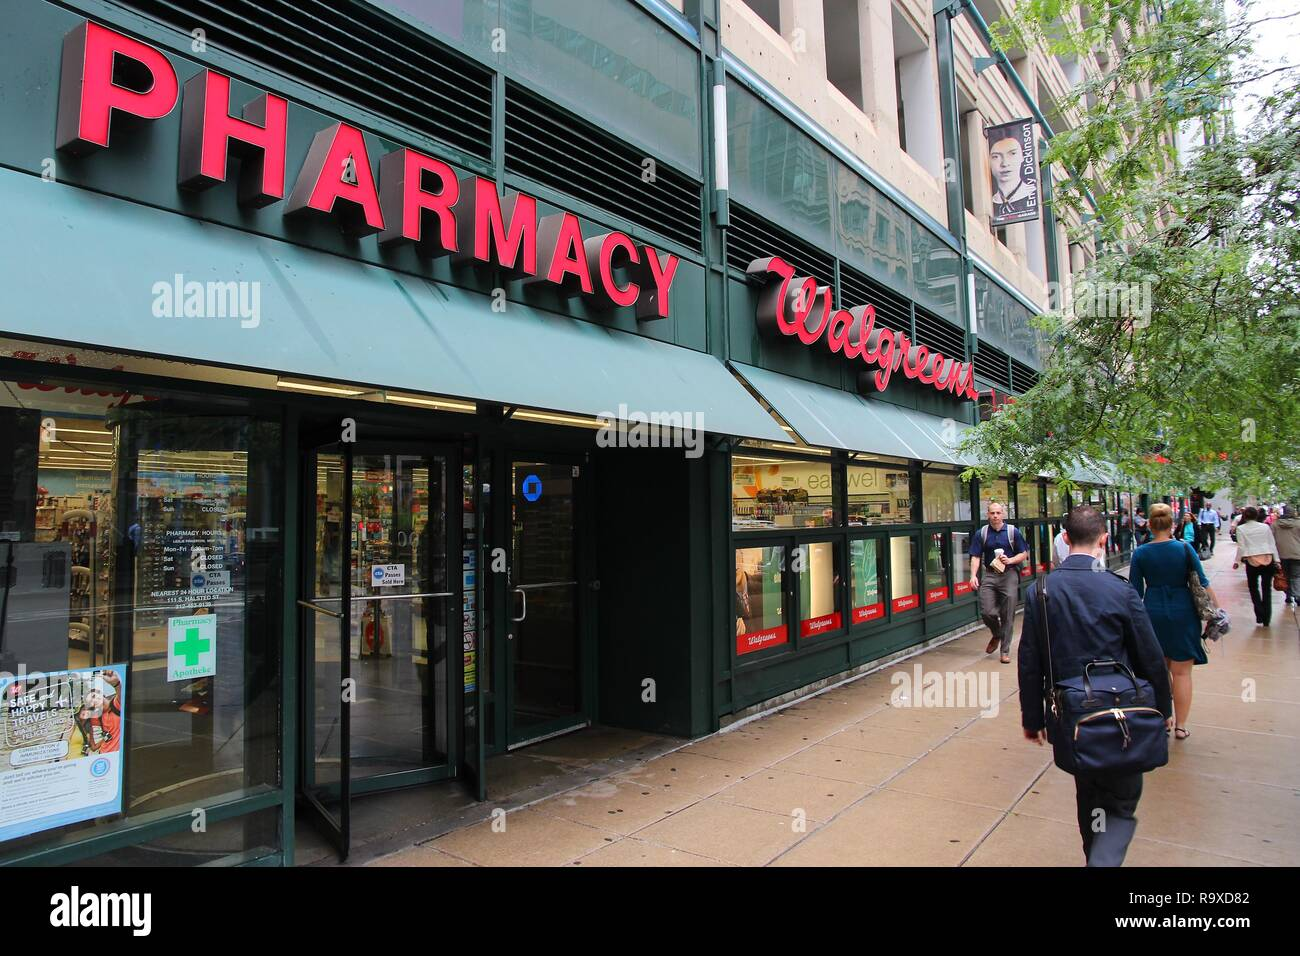 pharmacy usa shopping stock photos  u0026 pharmacy usa shopping